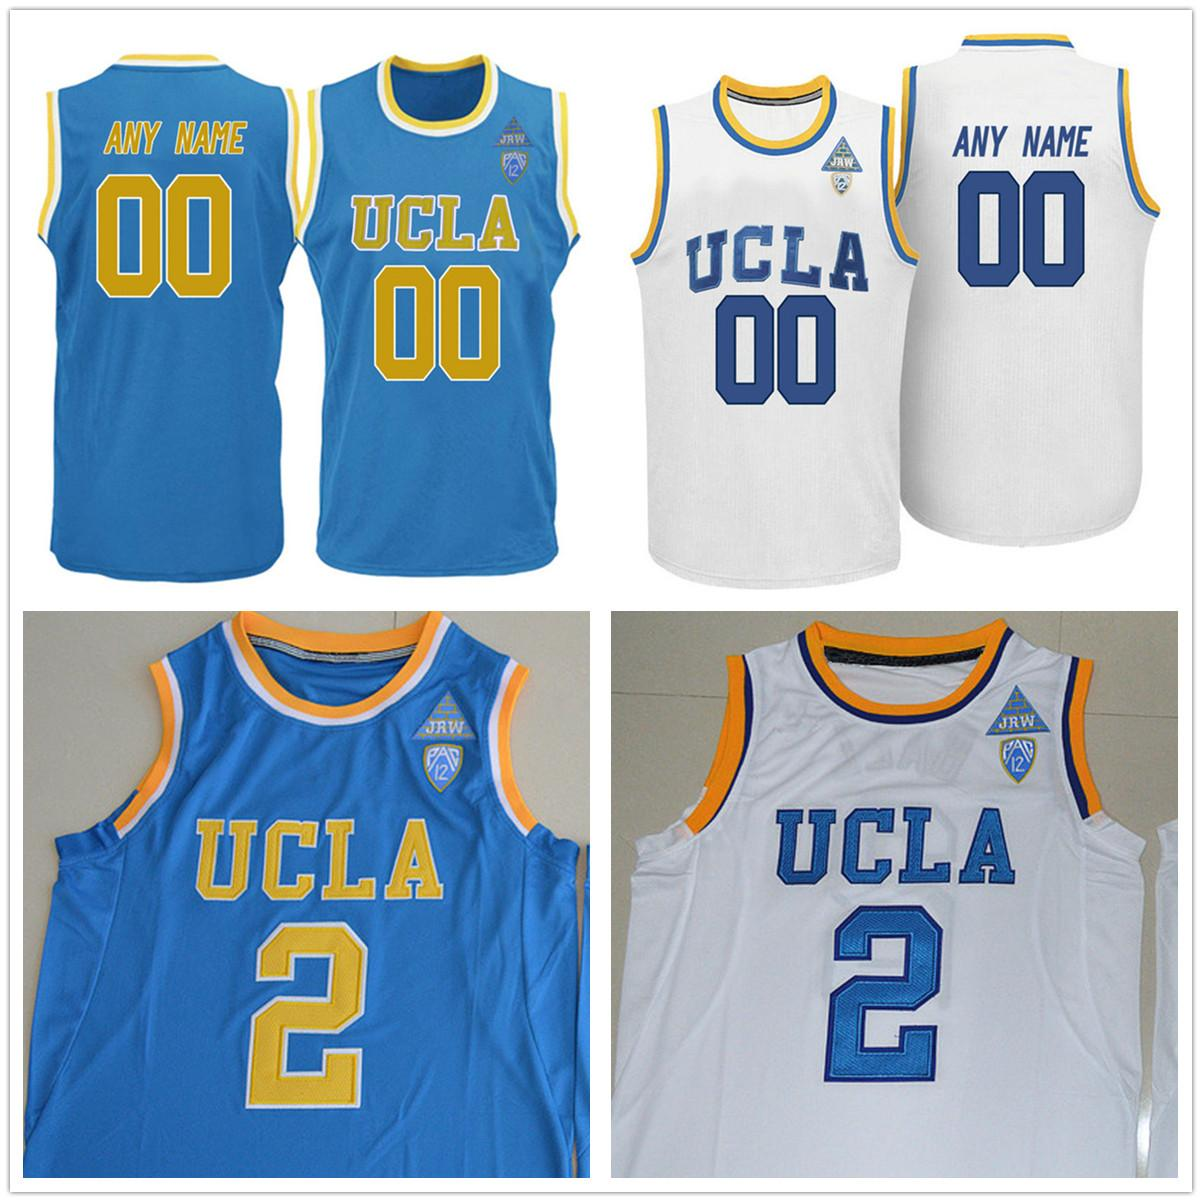 Ucla basketball uniforms